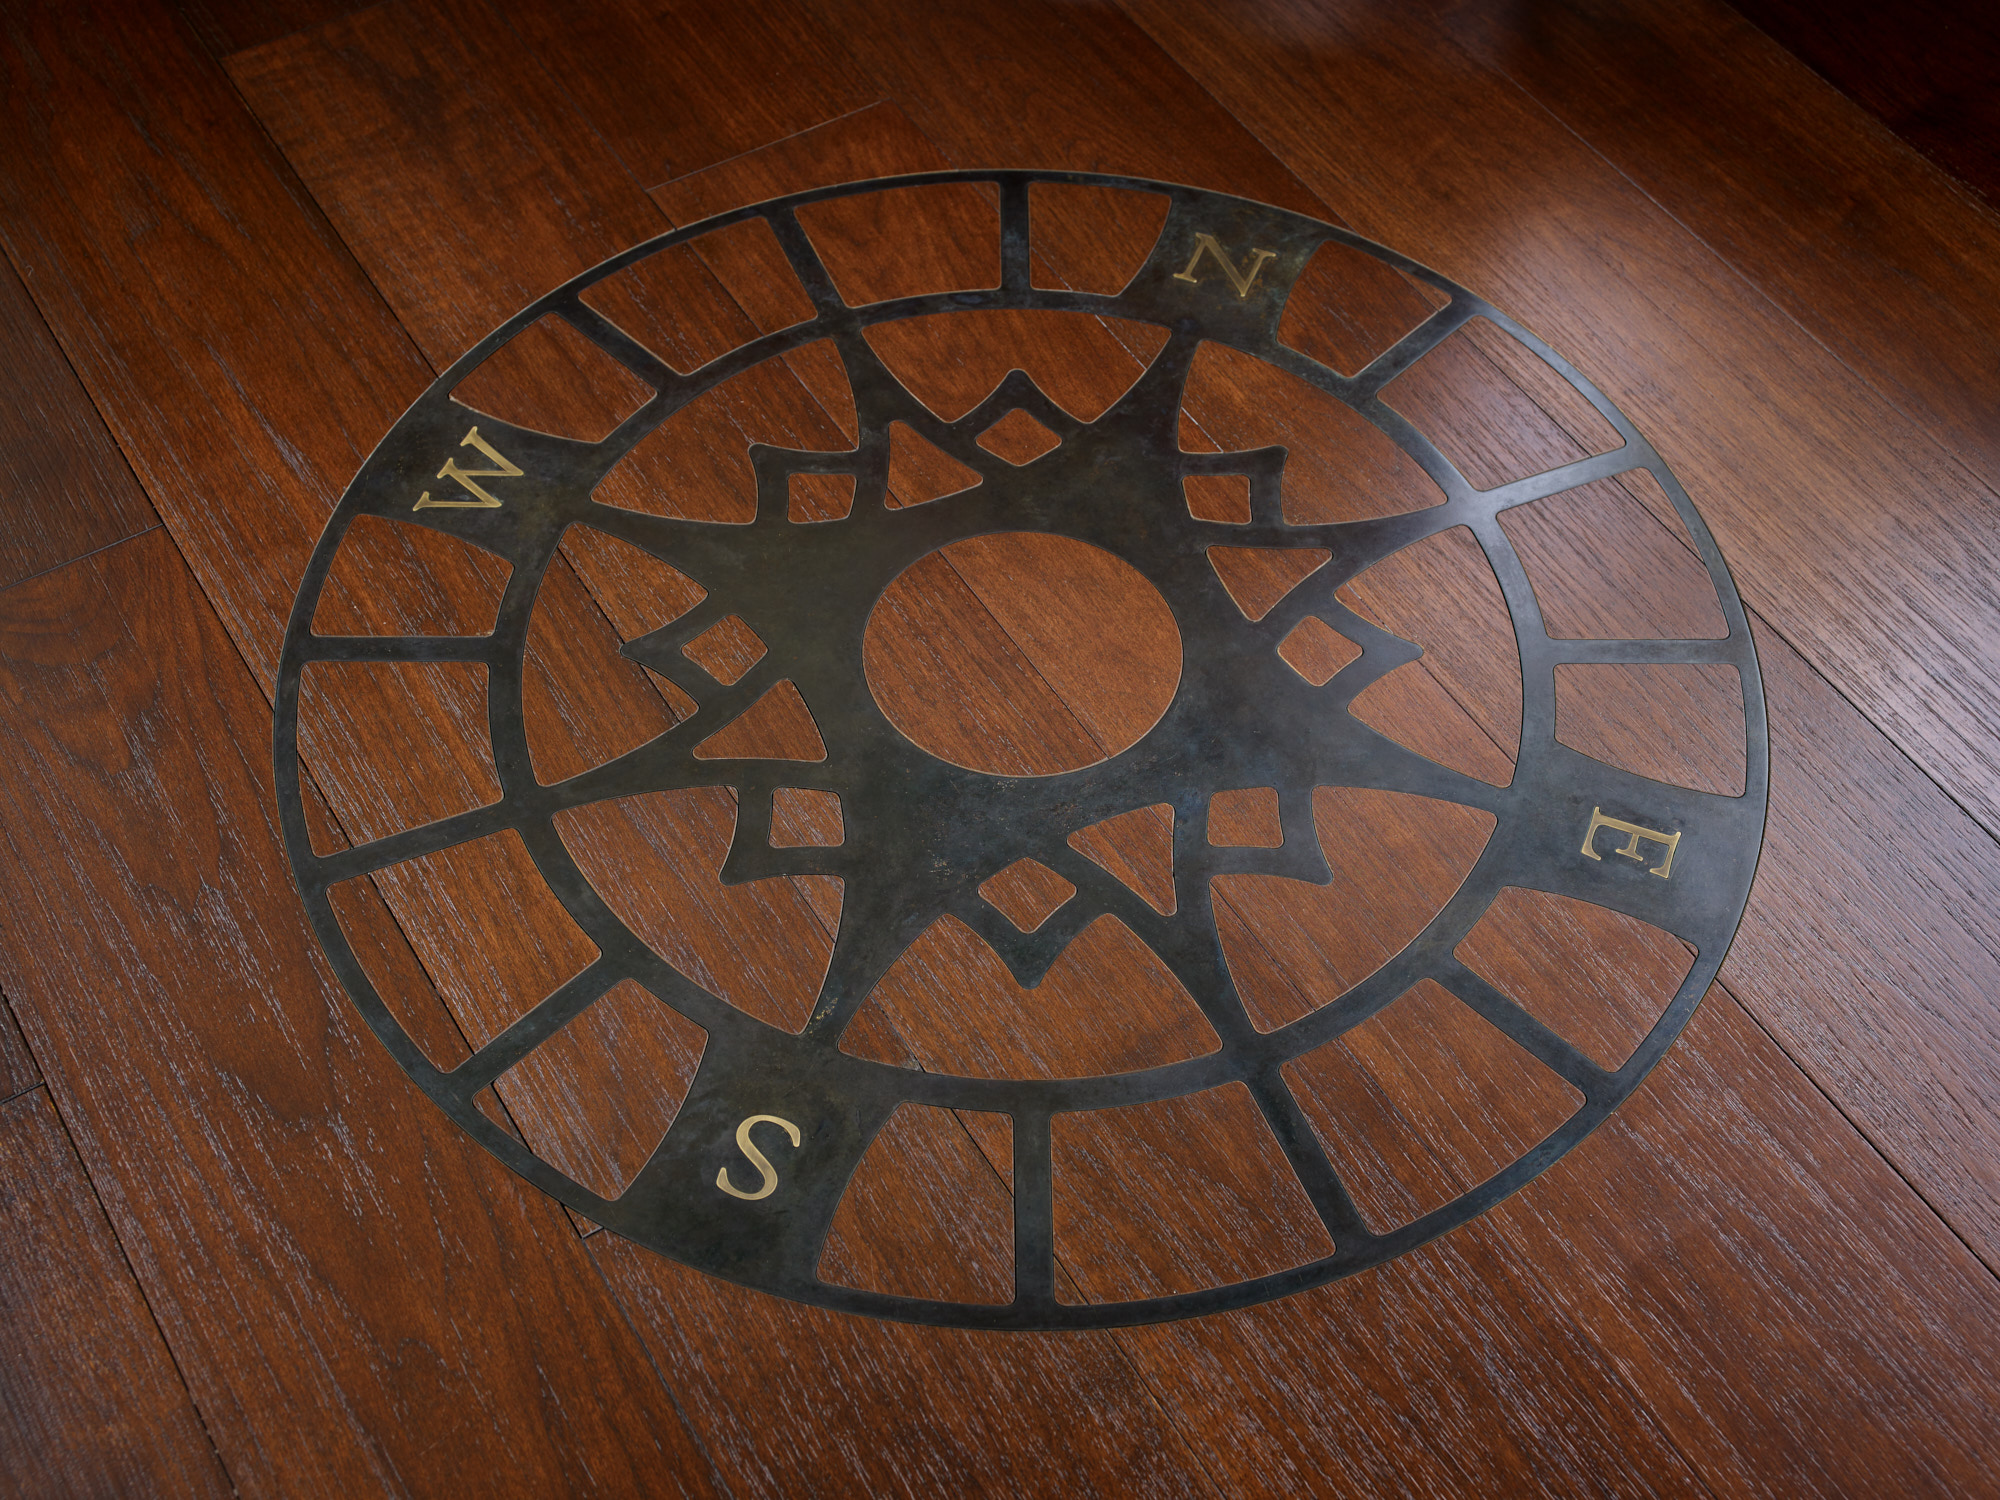 Nautical compass detail on the floor in the lookout room.